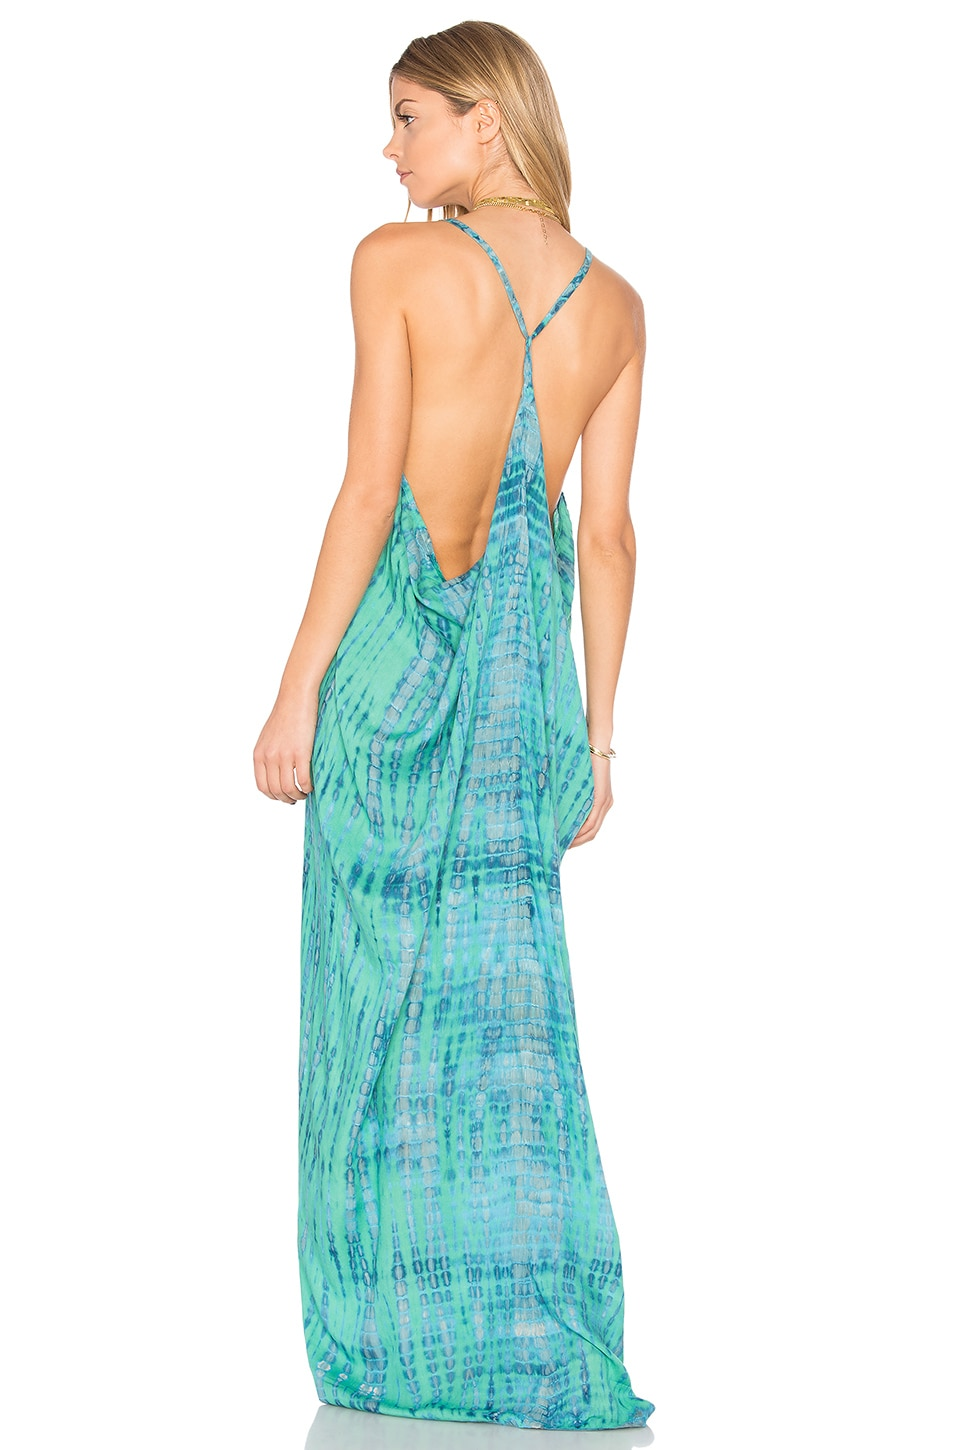 Tiare Hawaii Kalapana Maxi Dress in Leo Teal Stone